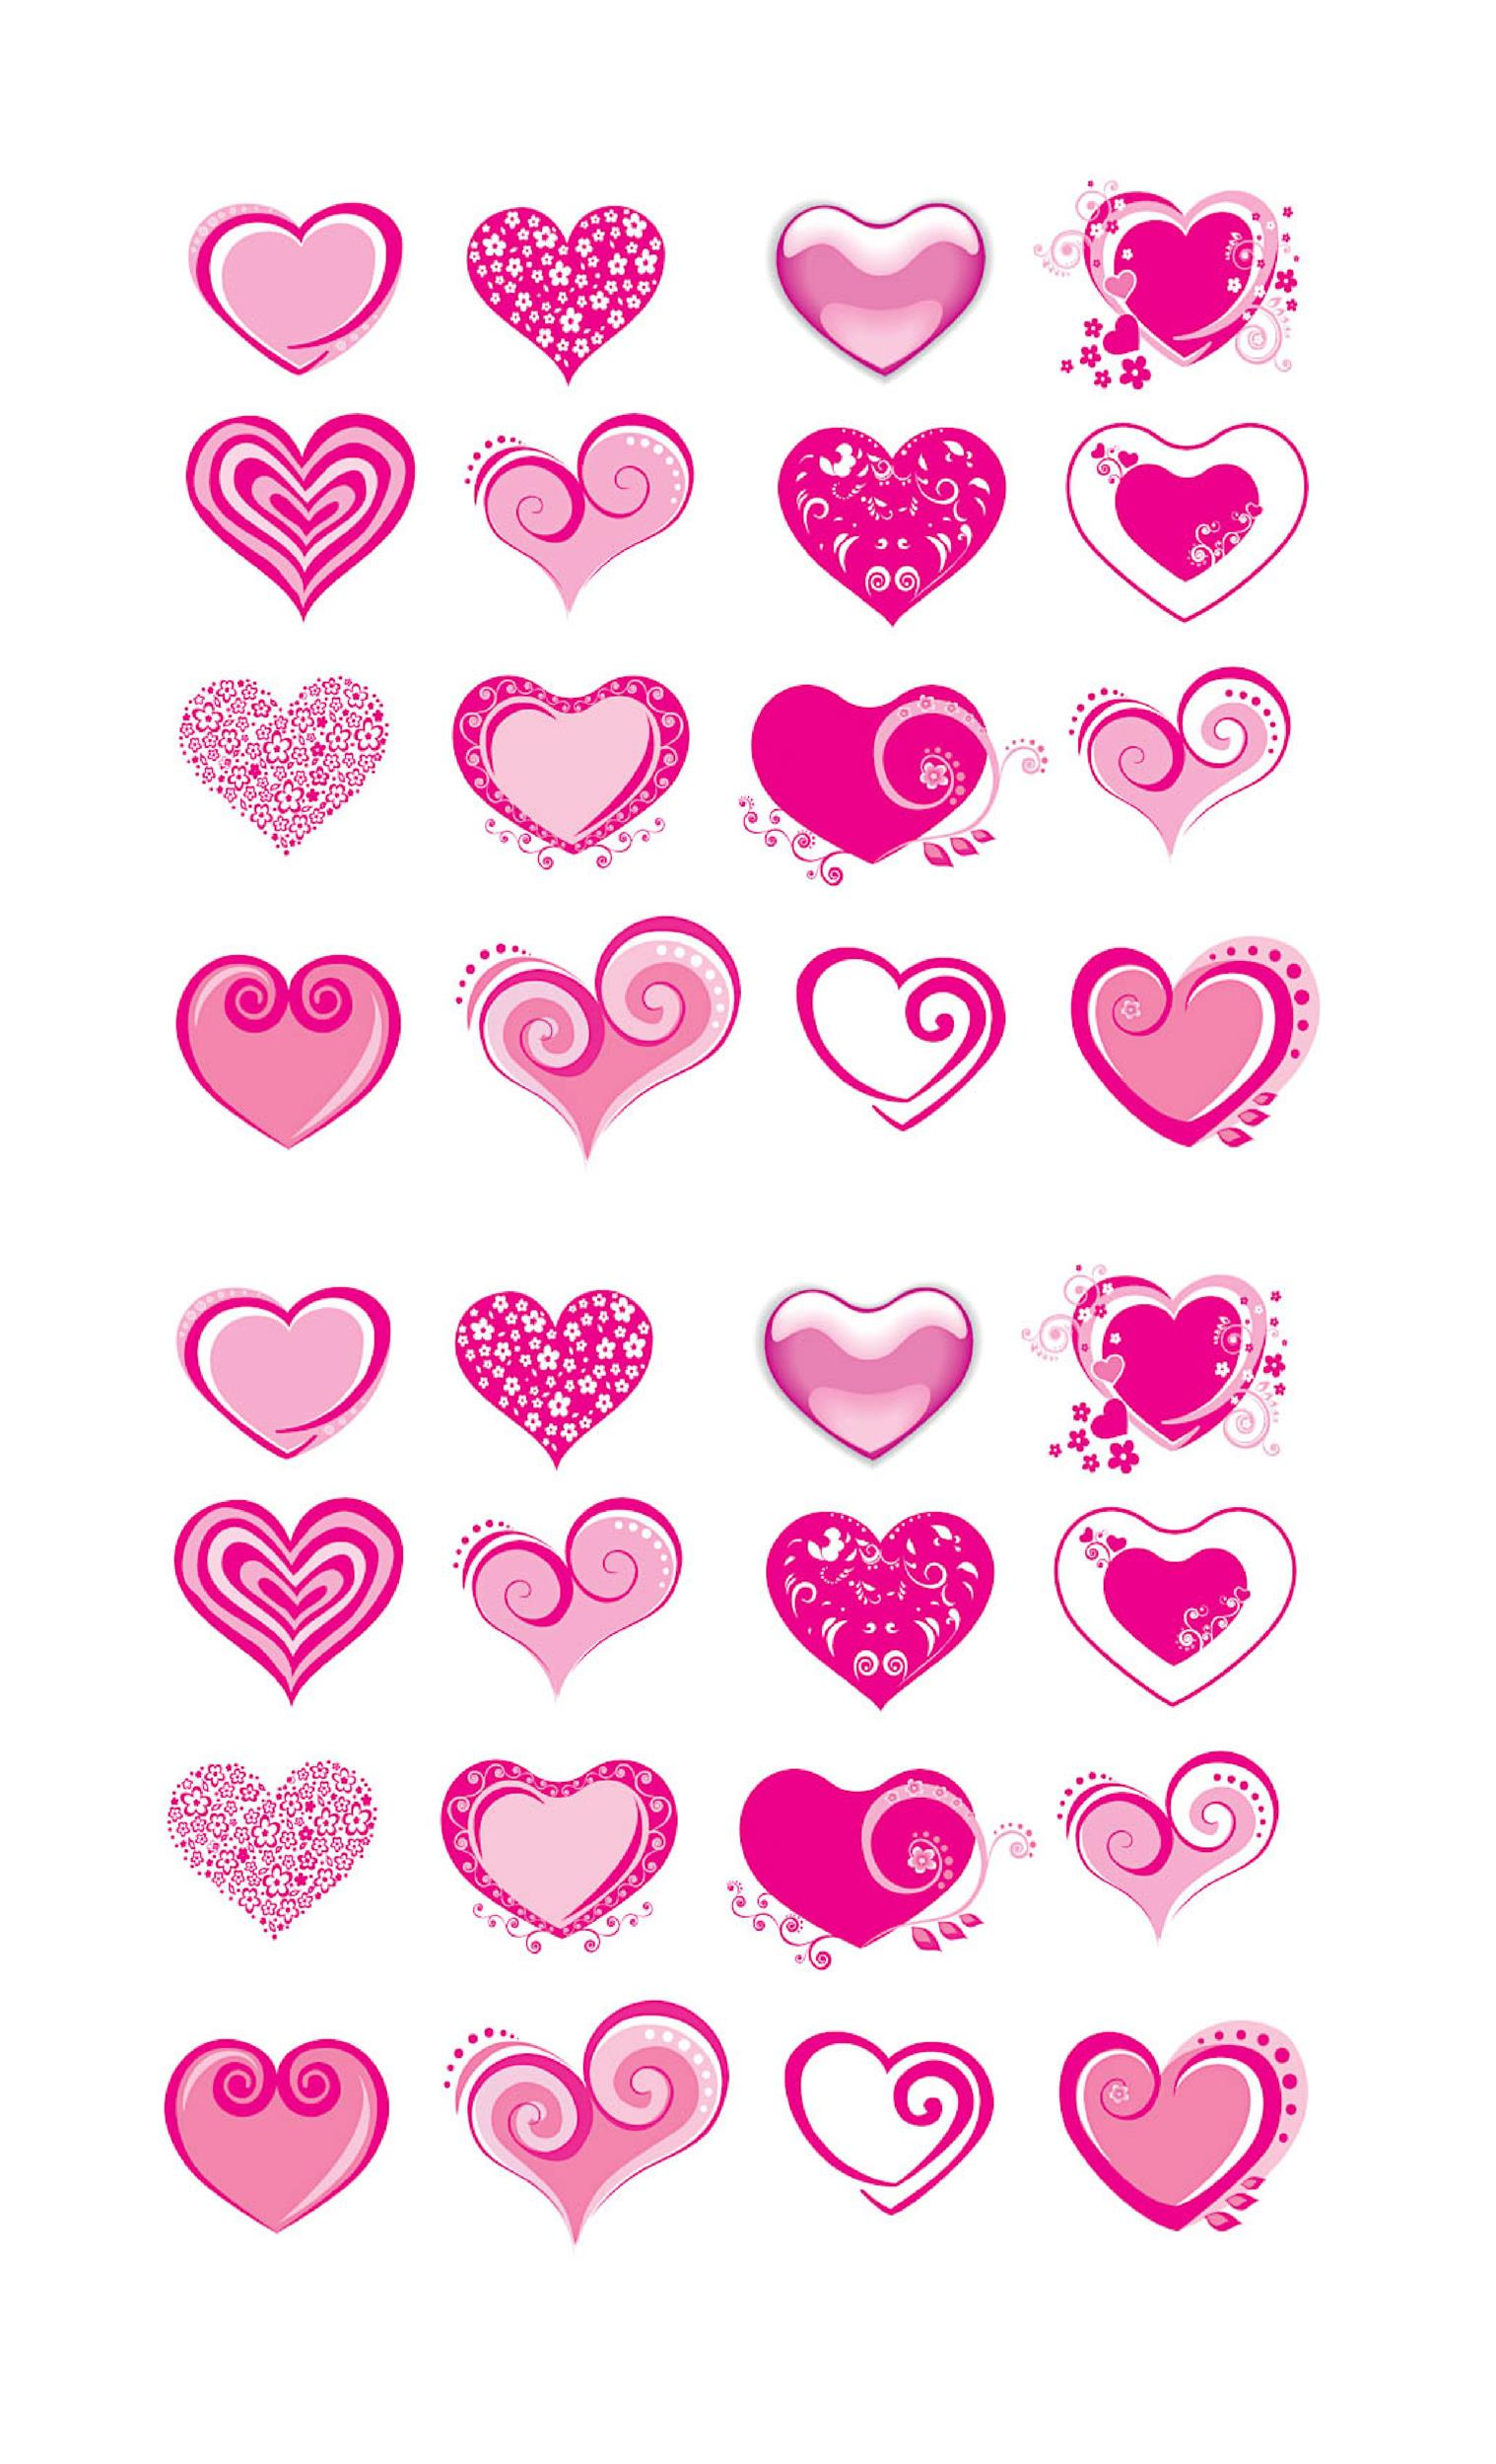 photograph regarding Hearts Printable named 40 Printable Center Templates 15 Consumption Illustrations